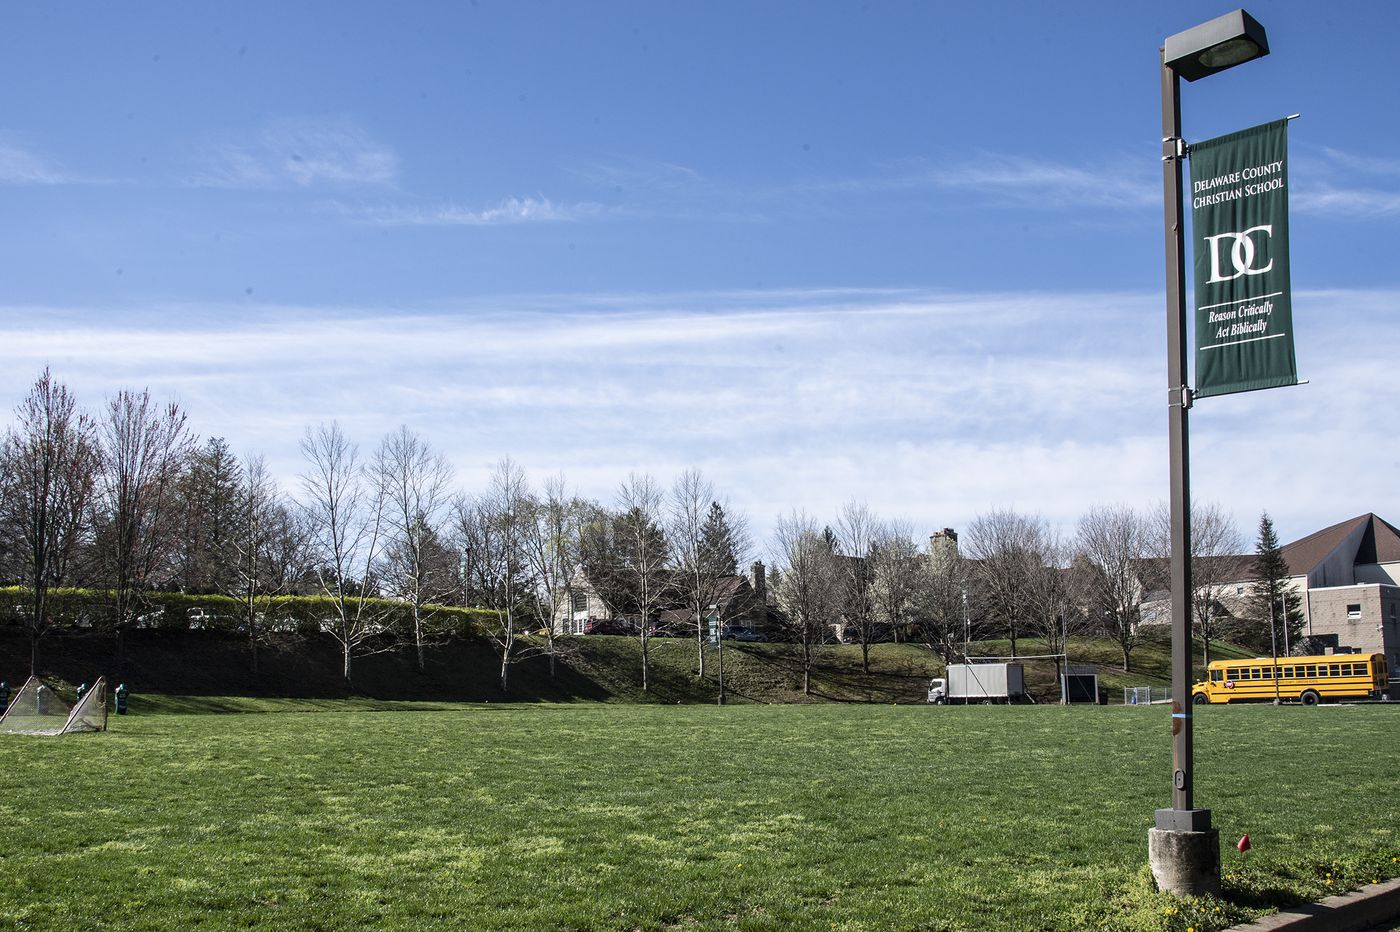 Radnor, Newtown residents oppose 'Taj Mahal' athletic field in their backyards